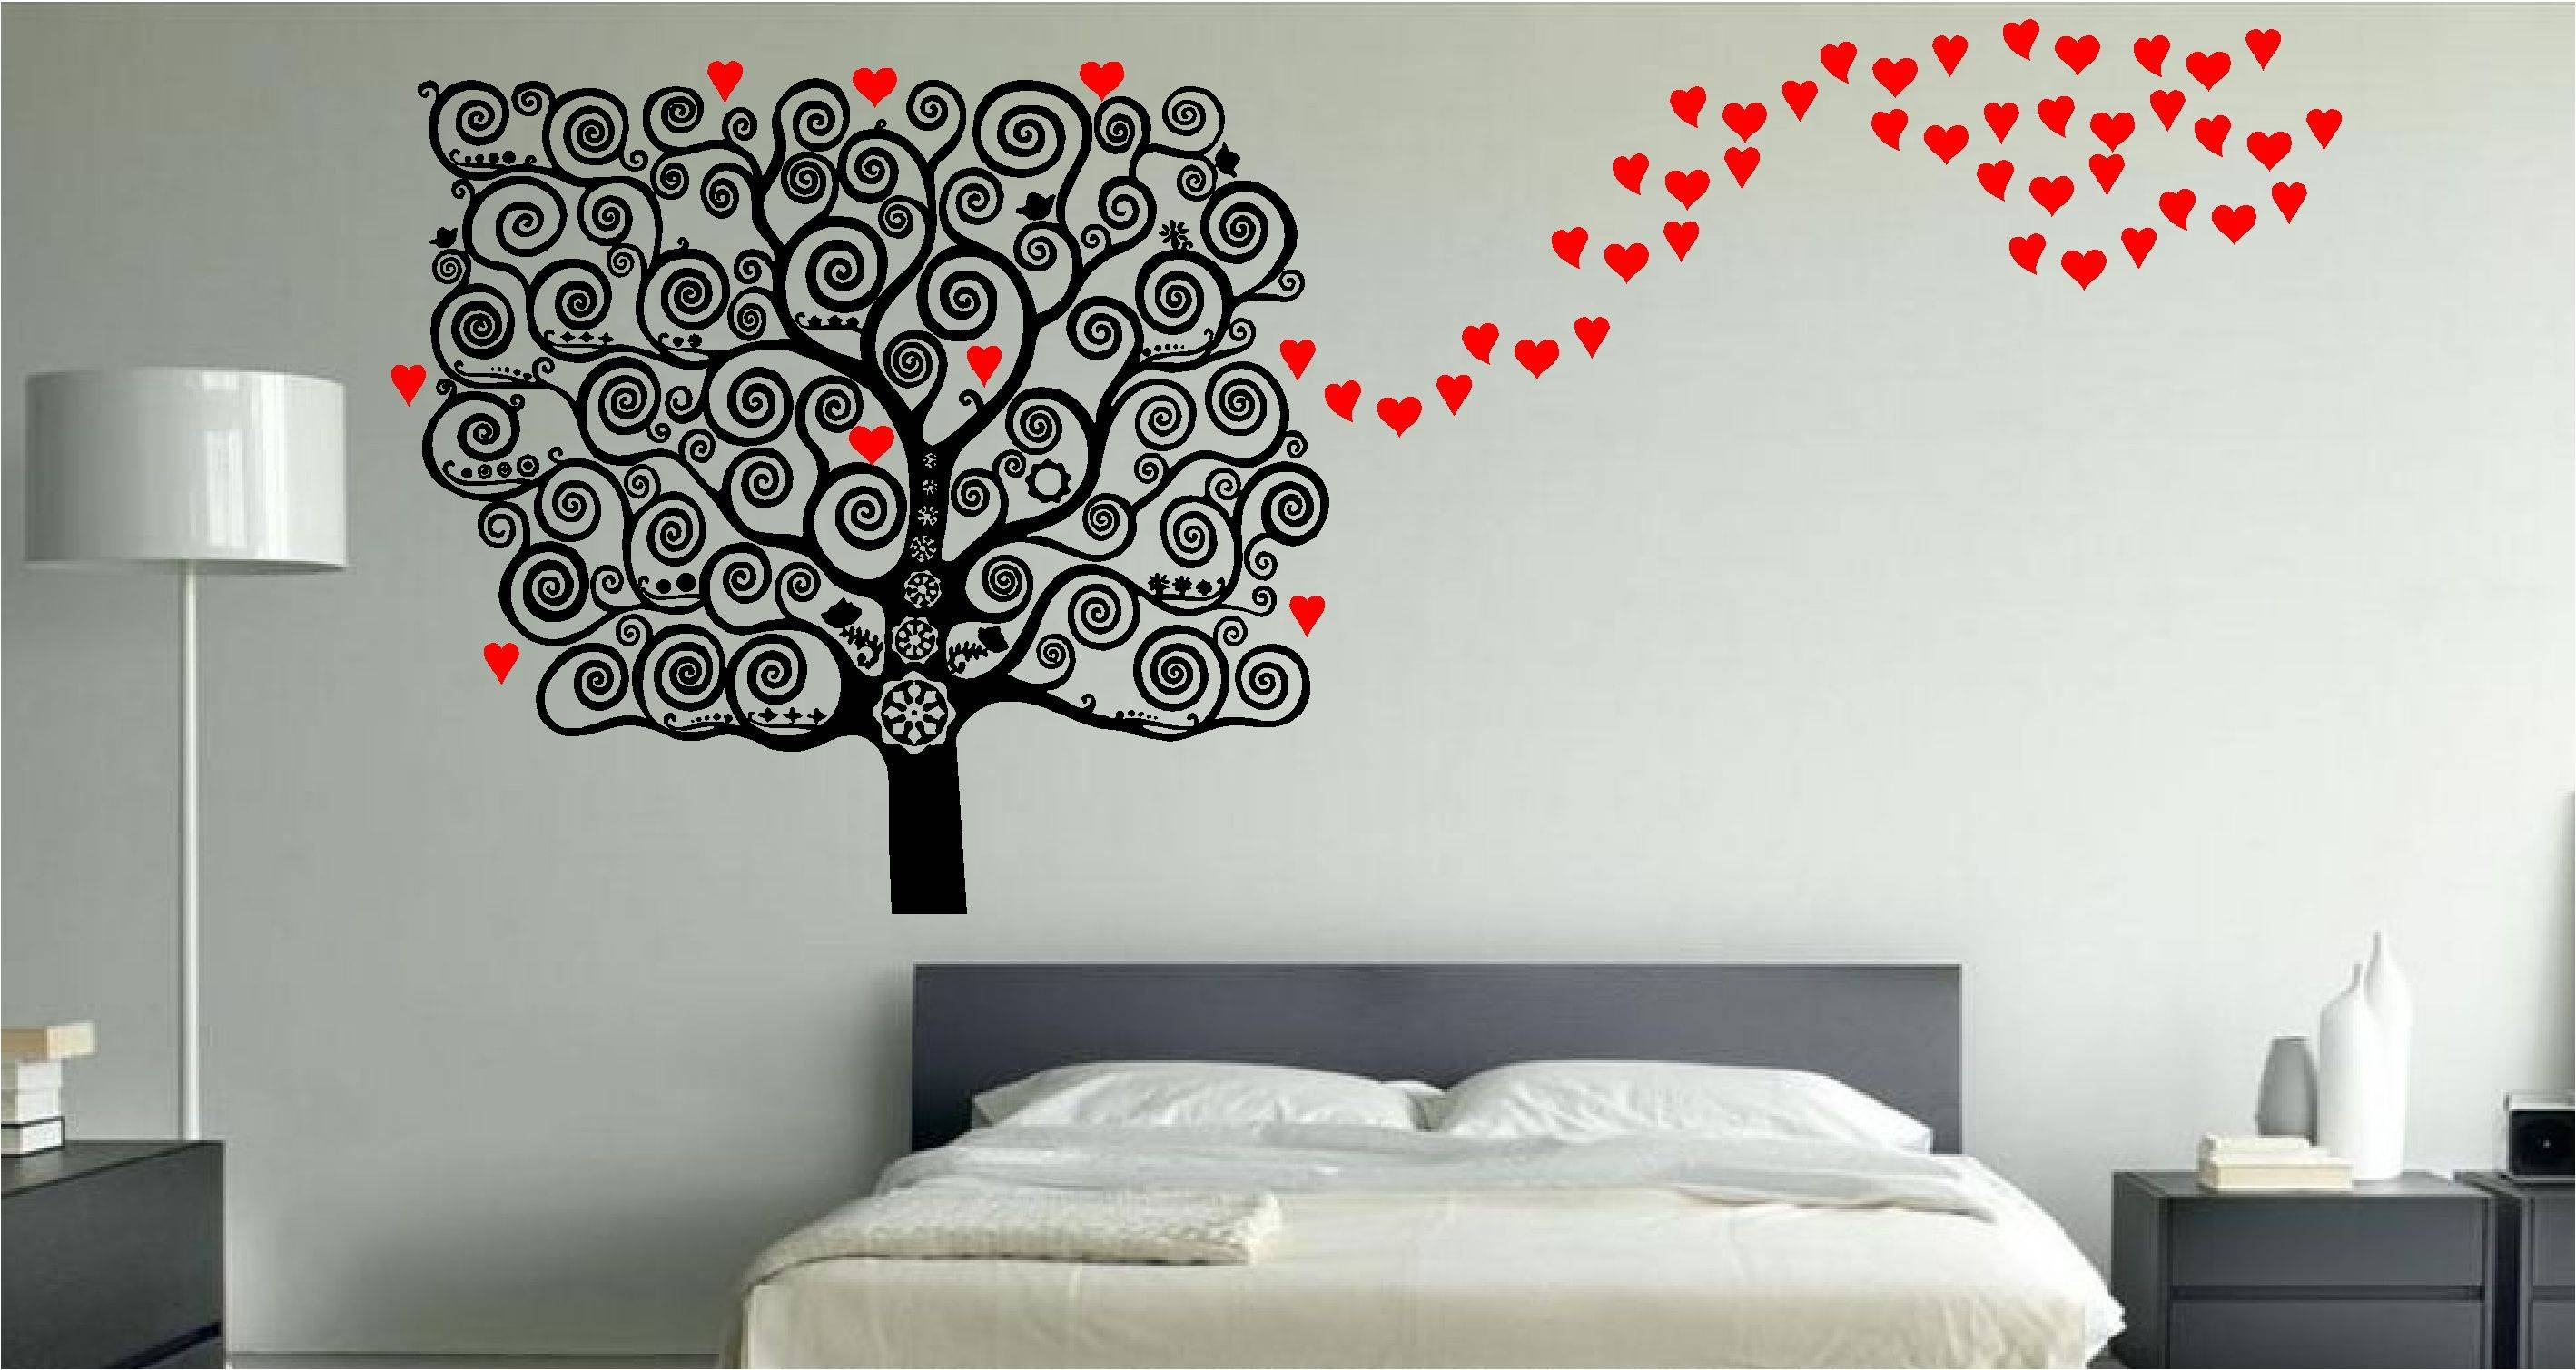 Bedroom : Abstract Wall Art Metal Wall Art Decor Wall Art Decals With Regard To Most Up To Date Wall Art Deco Decals (Gallery 3 of 20)